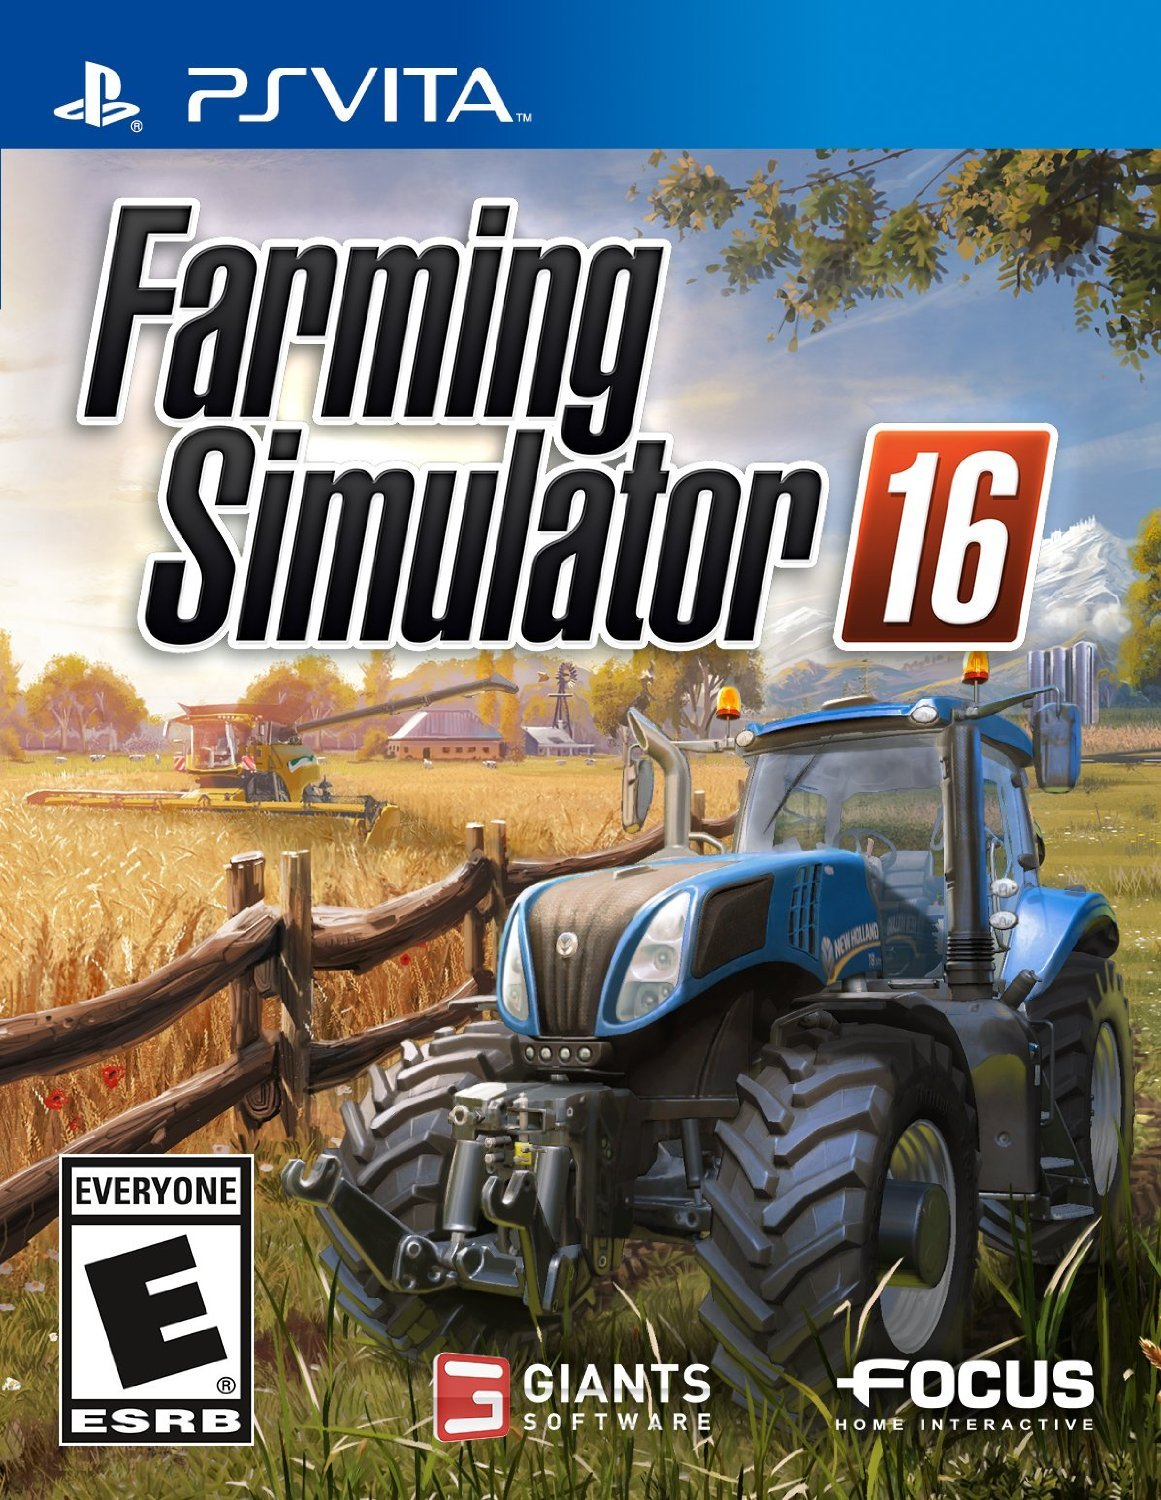 Farming Simulator 16 PSVita Physical Game Cartridge US